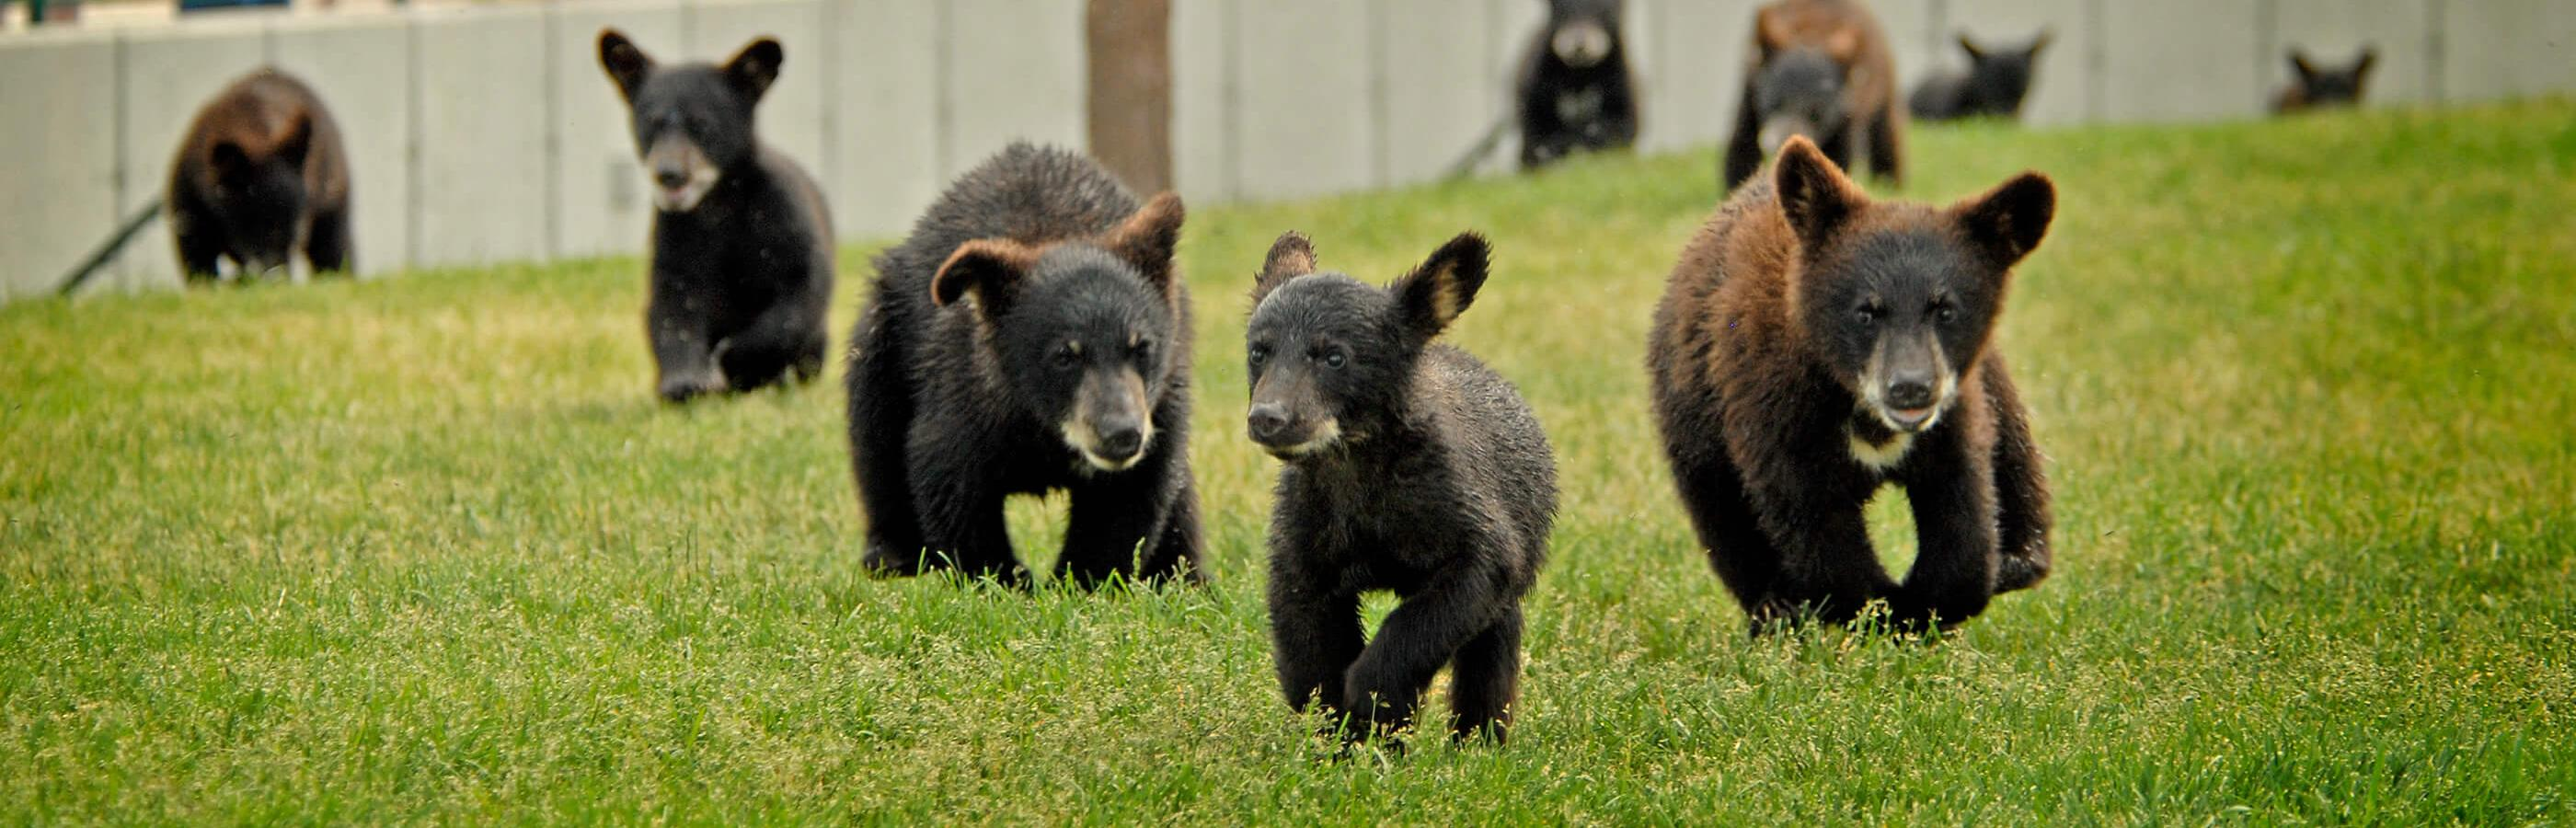 Bear cubs Running in Bear Country USA in Rapid City, SD